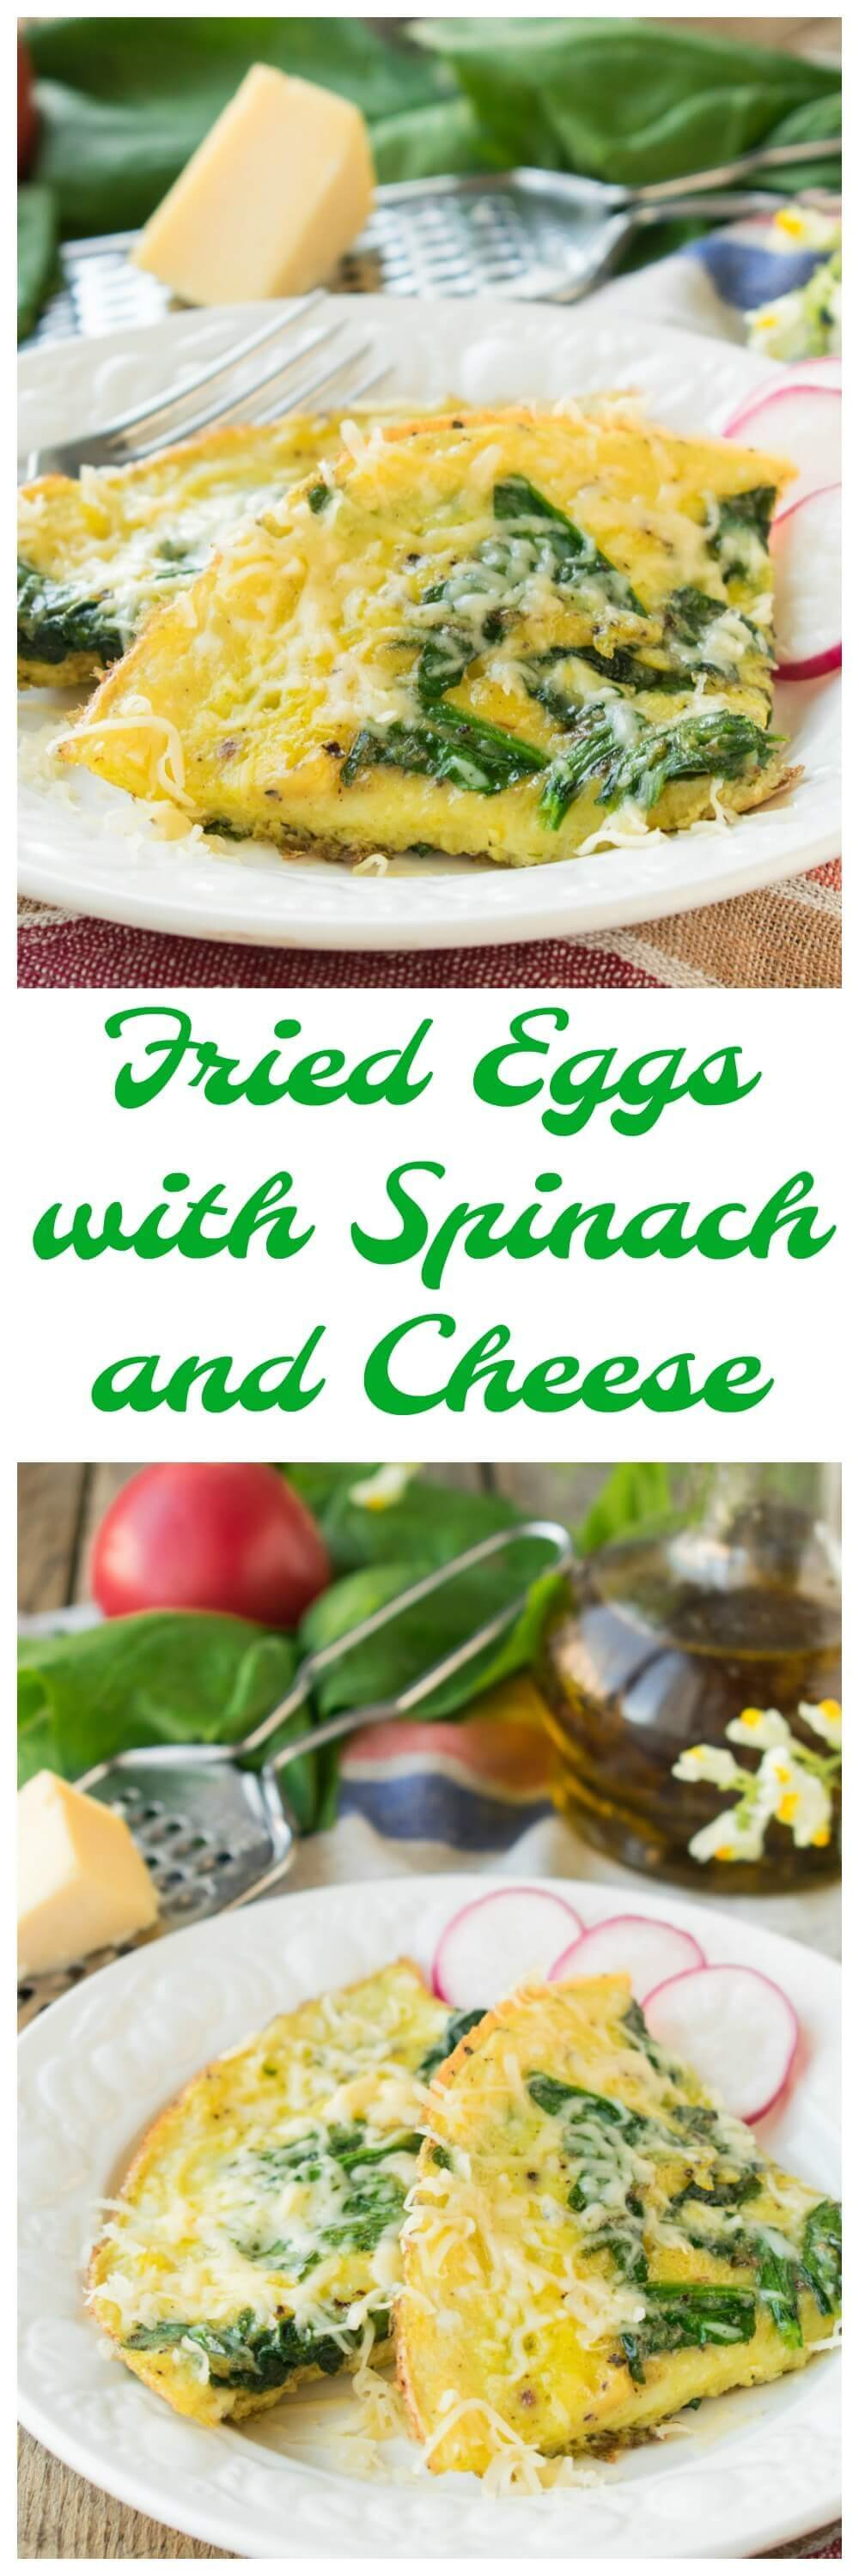 Fried Eggs with Spinach and Cheese